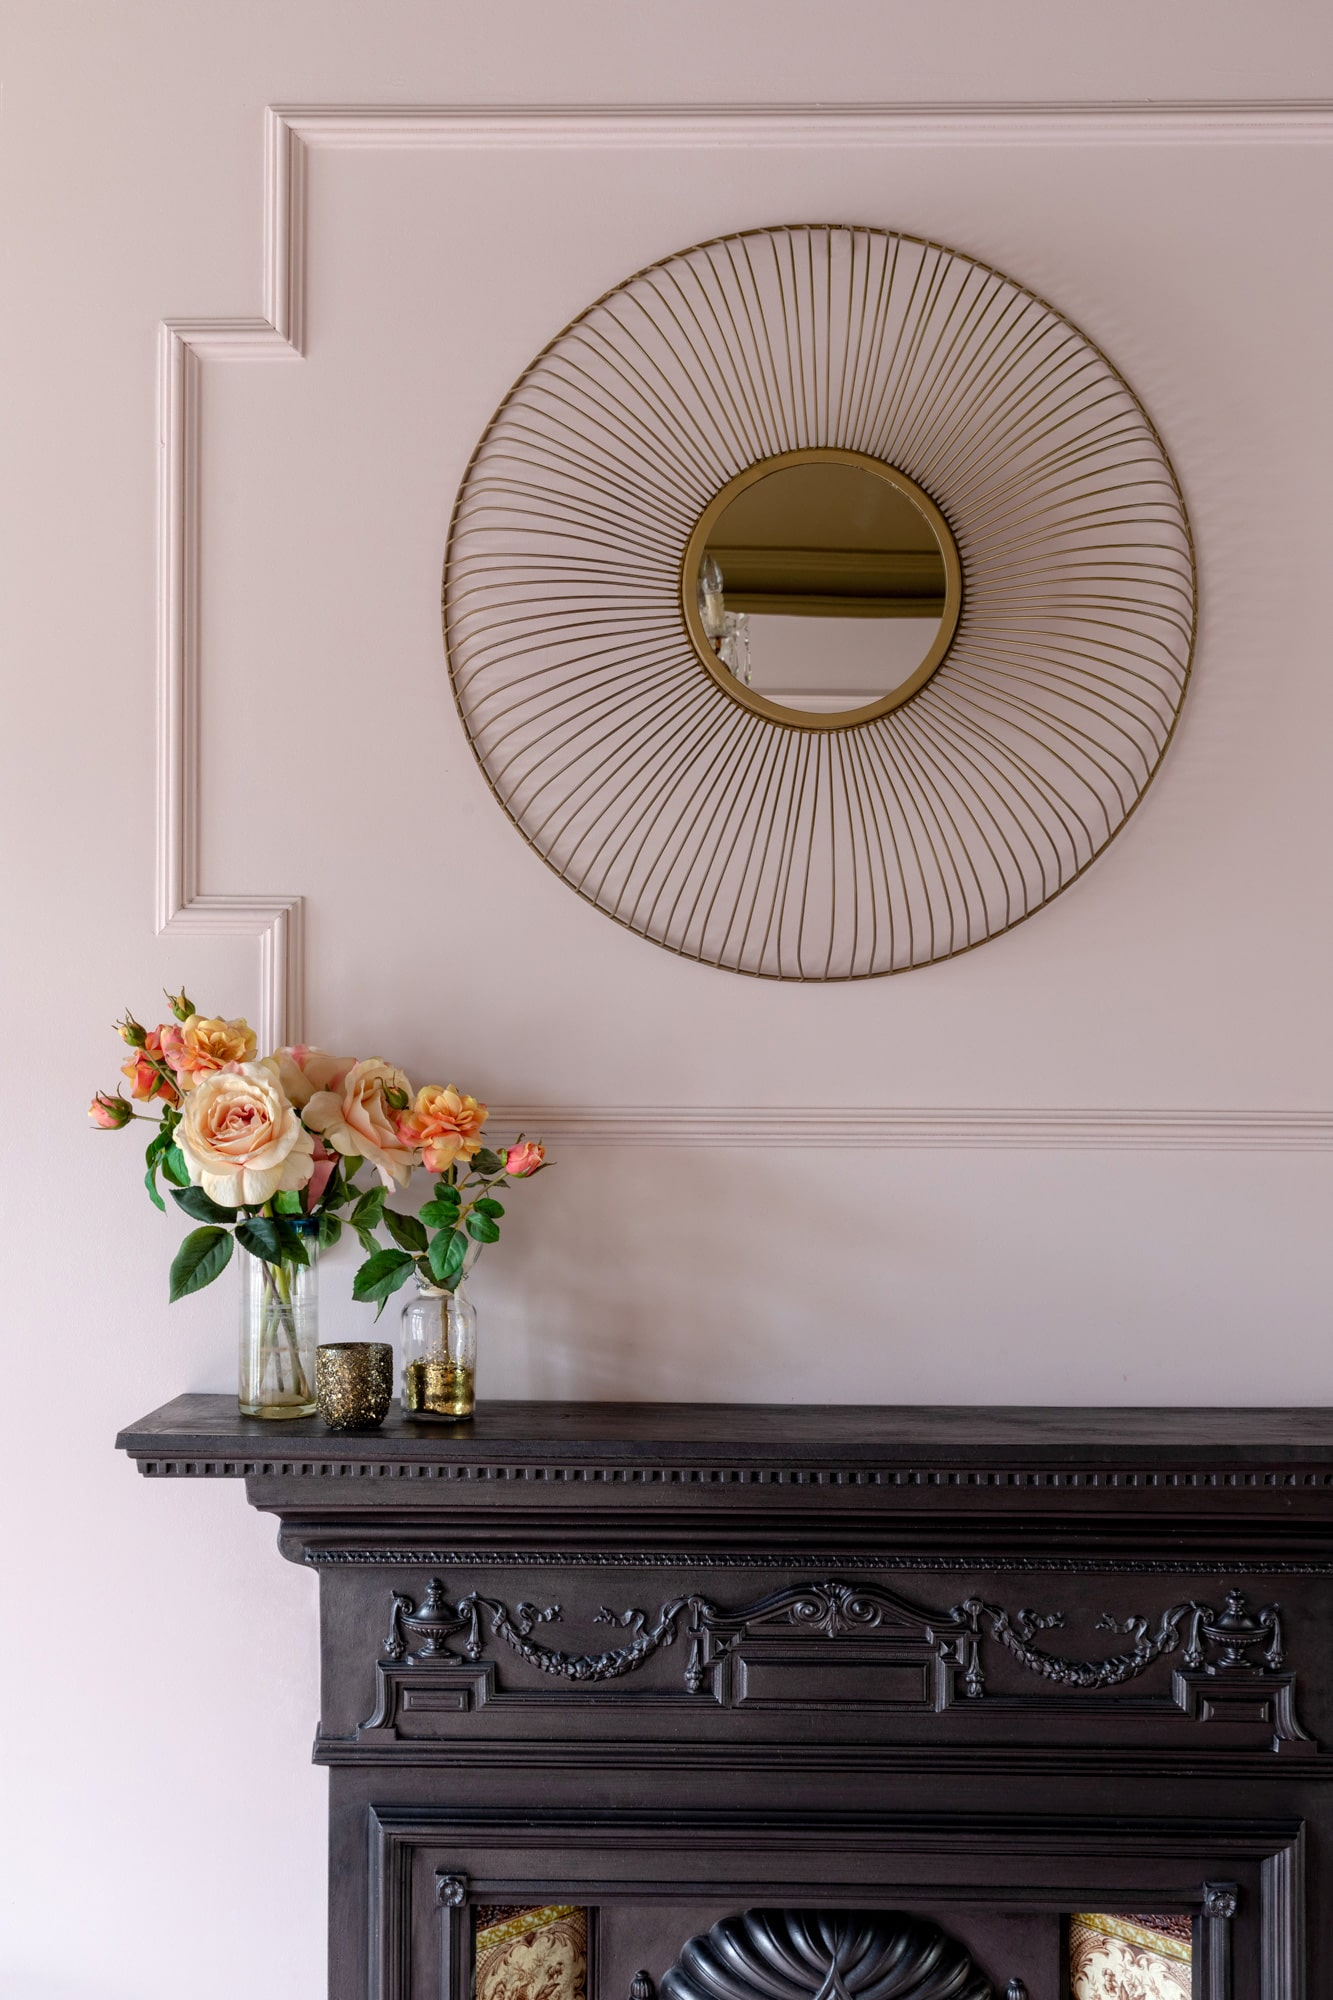 Interior detail shot: pink walls, a vase above a fireplace; round mirror